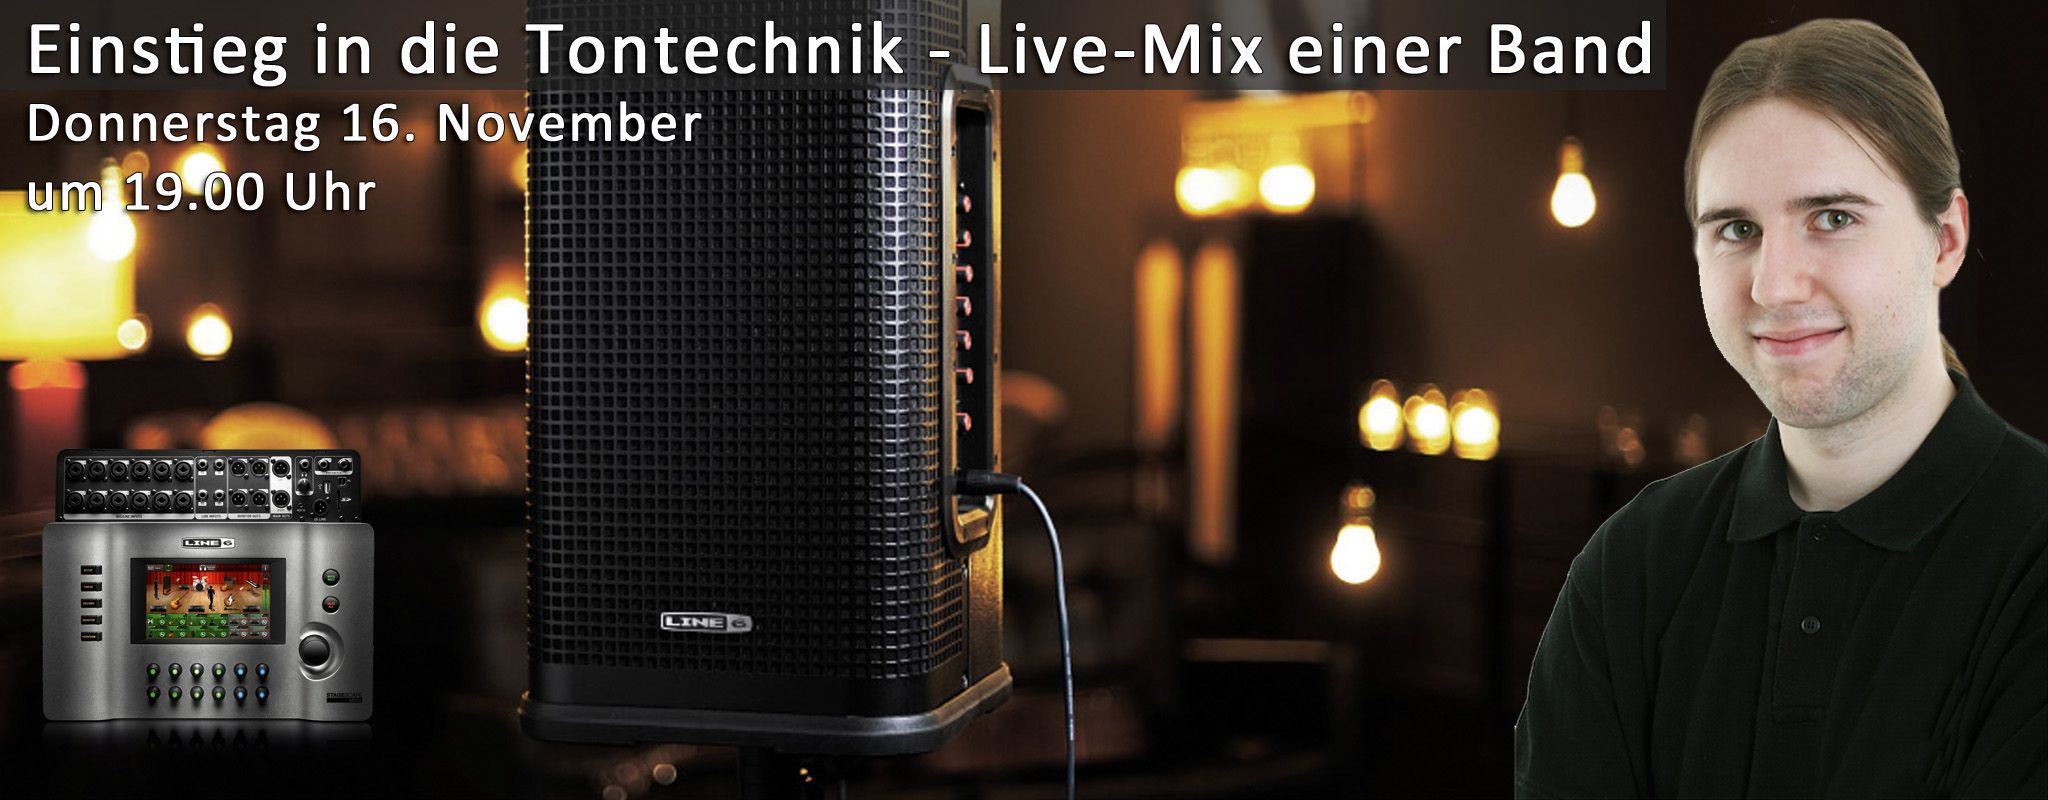 Workshop: Einstieg in die Tontechnik - Live Mix einer Band